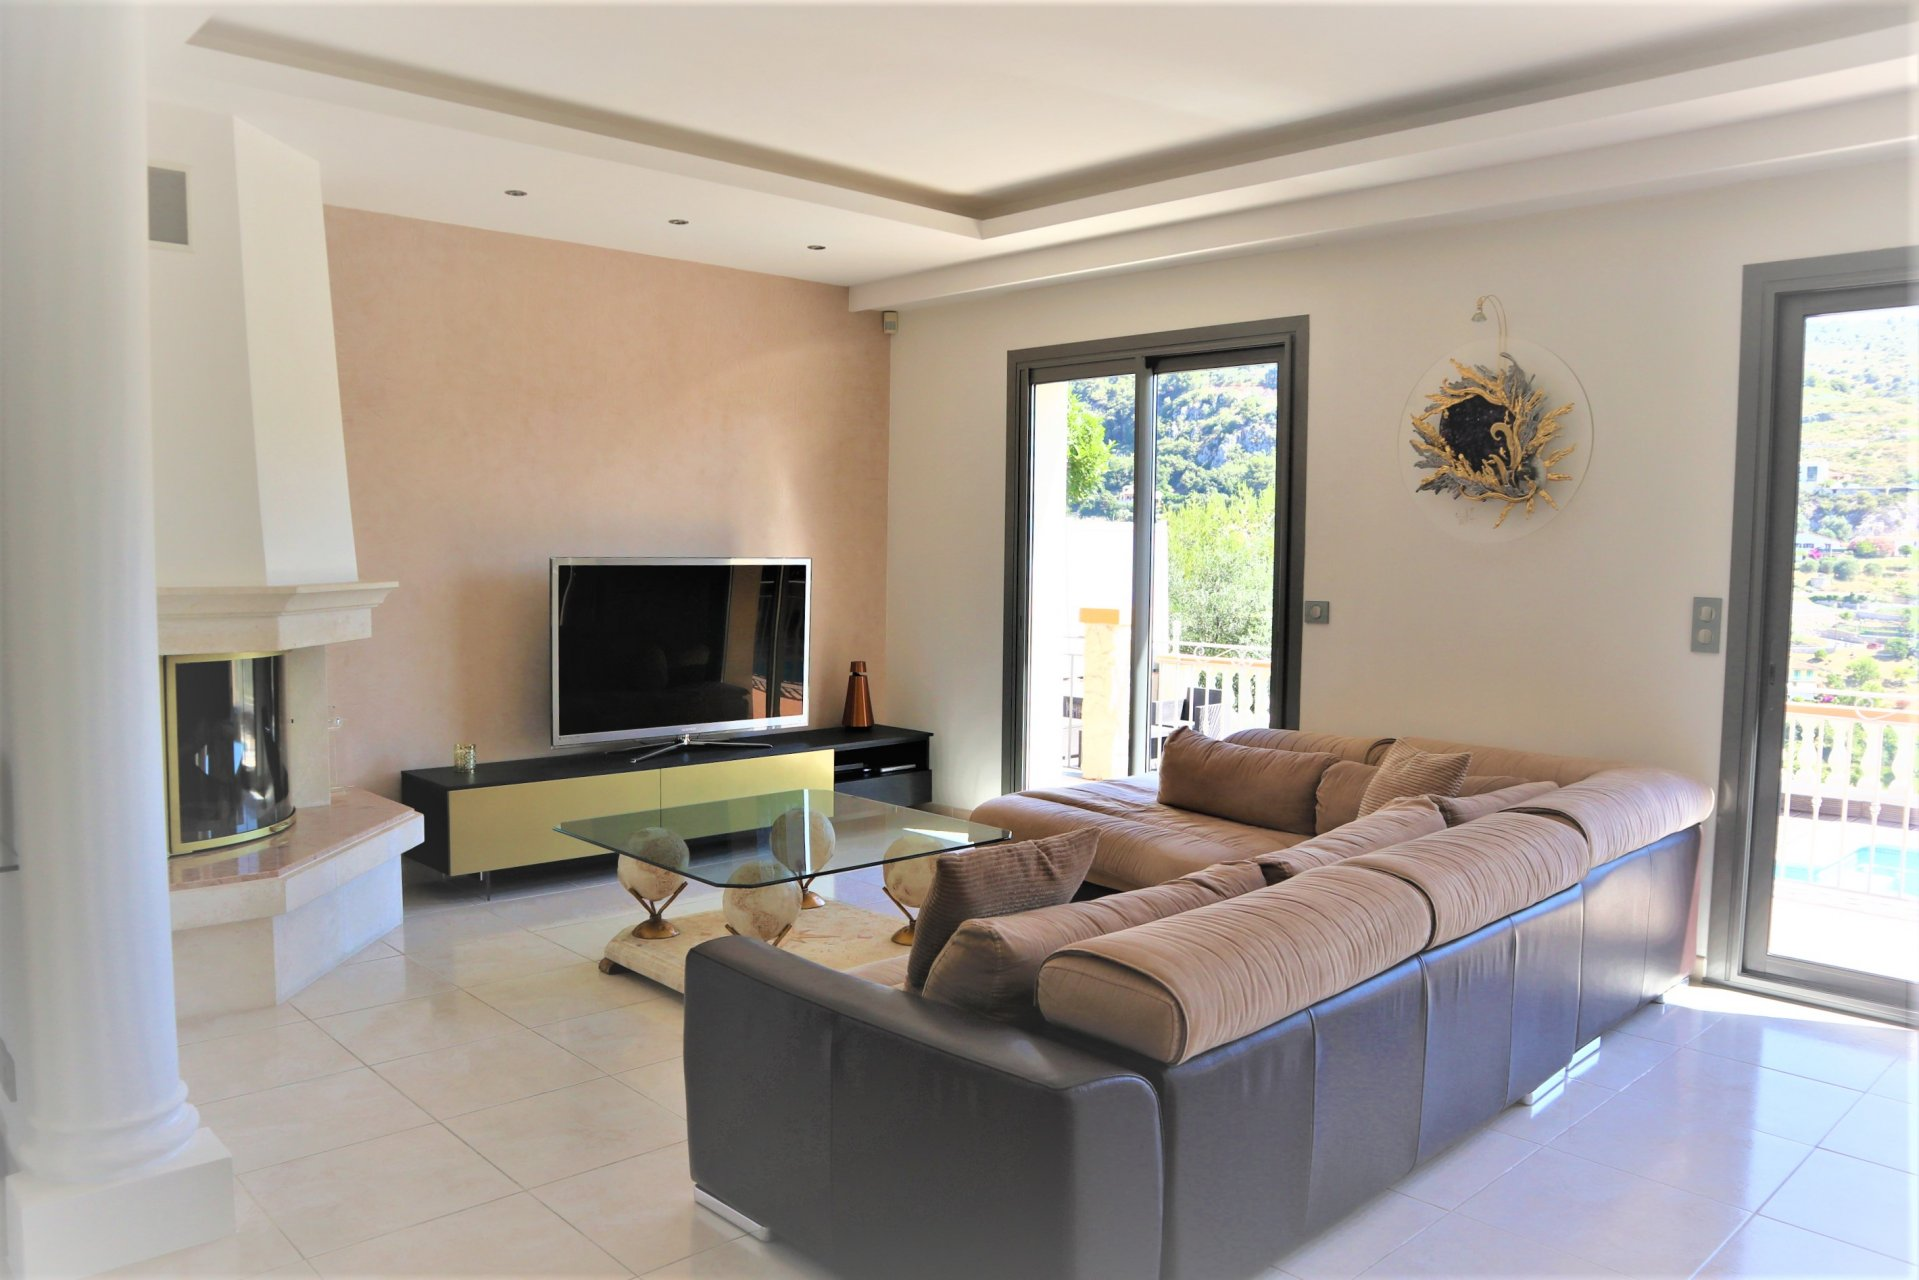 HILLS AROUND NICE - VILLA 3 BEDROOMS WITH POOL AND HILL VIEWS